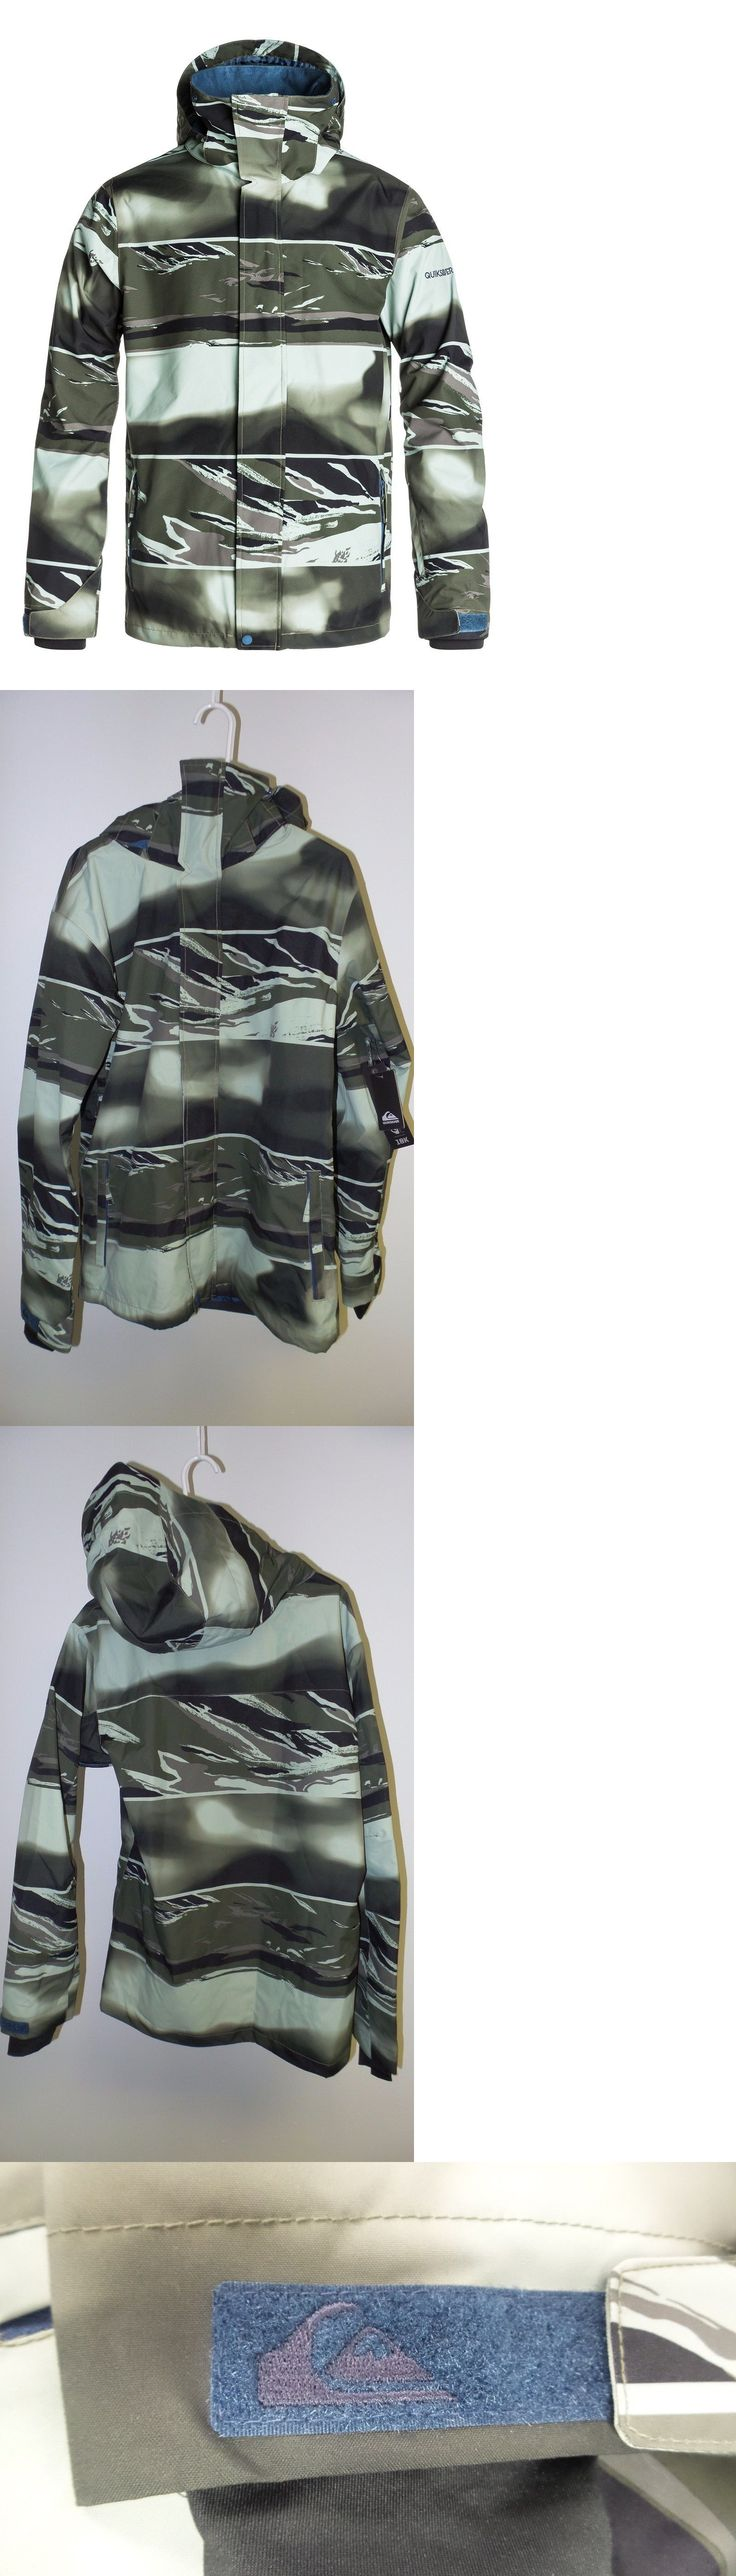 Coats and Jackets 26346: New Quiksilver Mission Printed Shell Jacket -Size: Medium- -Alaska Camo - -> BUY IT NOW ONLY: $54.95 on eBay!